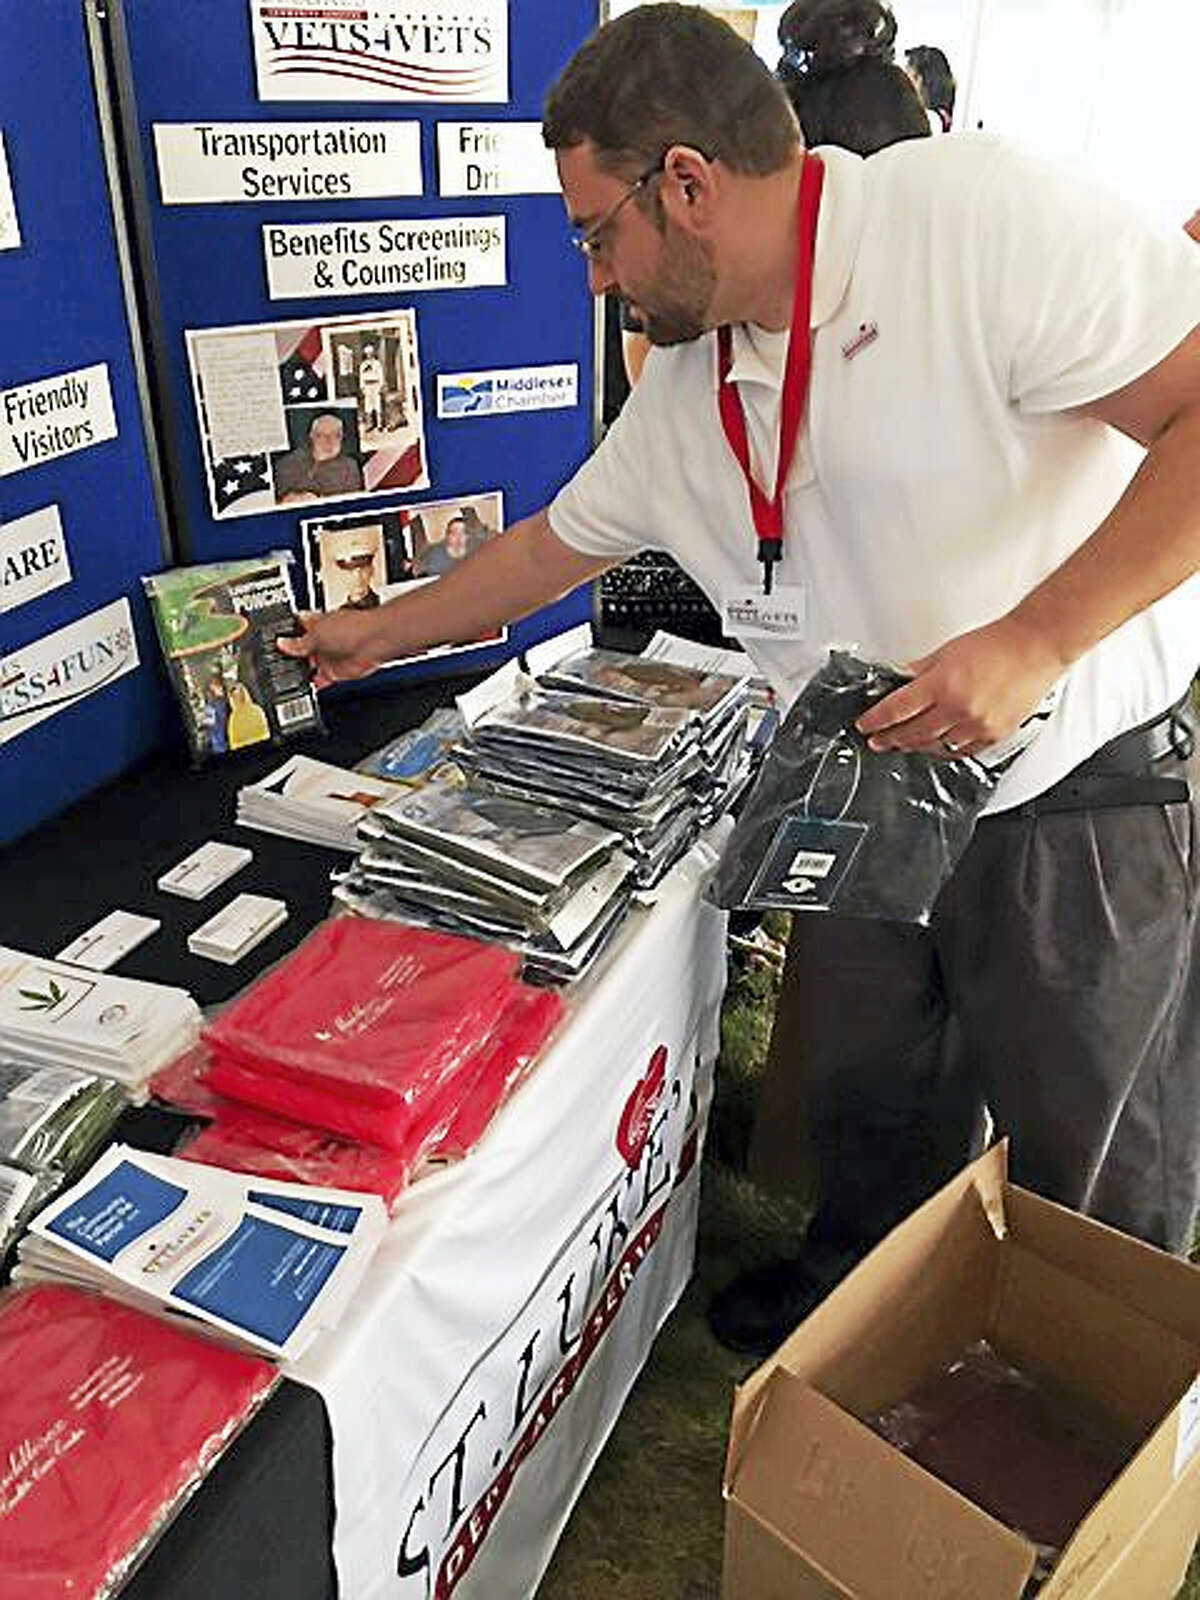 Volunteers for St. Luke's Vets4Vets program helped provide transportation to the 2015 Operation Stand Down event for homeless veterans at the Connecticut Veterans Home, Rocky Hill. Volunteers helped to distribute 500 ponchos to vets.